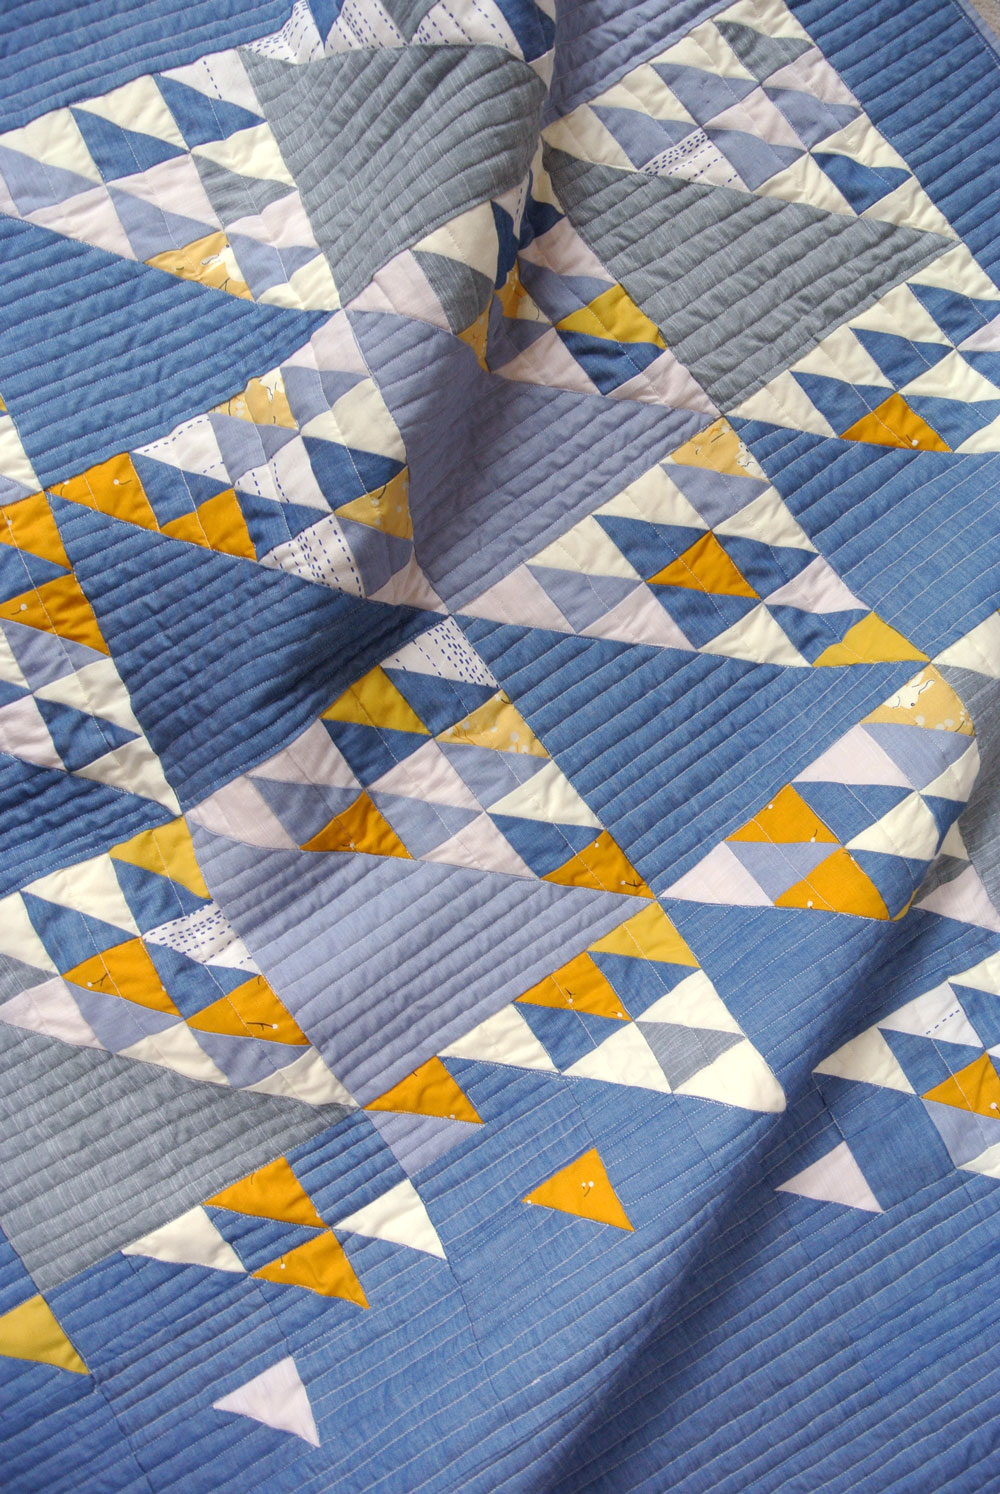 Fly Away Quilt Pattern: Use Up Those Scraps! Quilt Pattern Available From Suzy Quilts | Suzy Quilts https://suzyquilts.com/fly-away-quilt